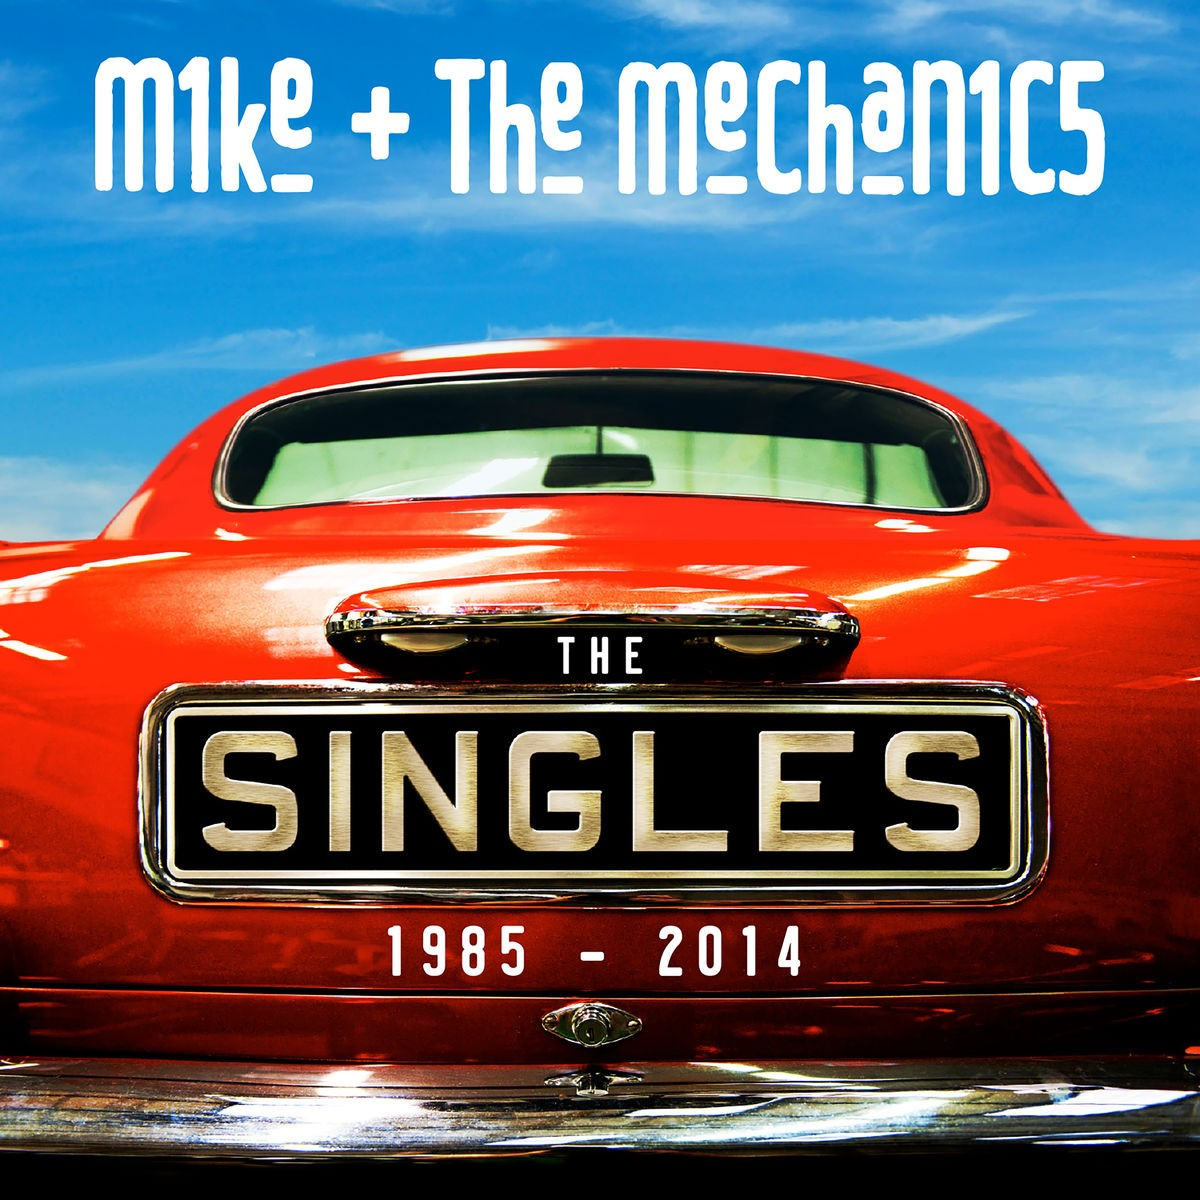 Mike And The Mechanics - The Singles 1985-2014 CD - 5053826723